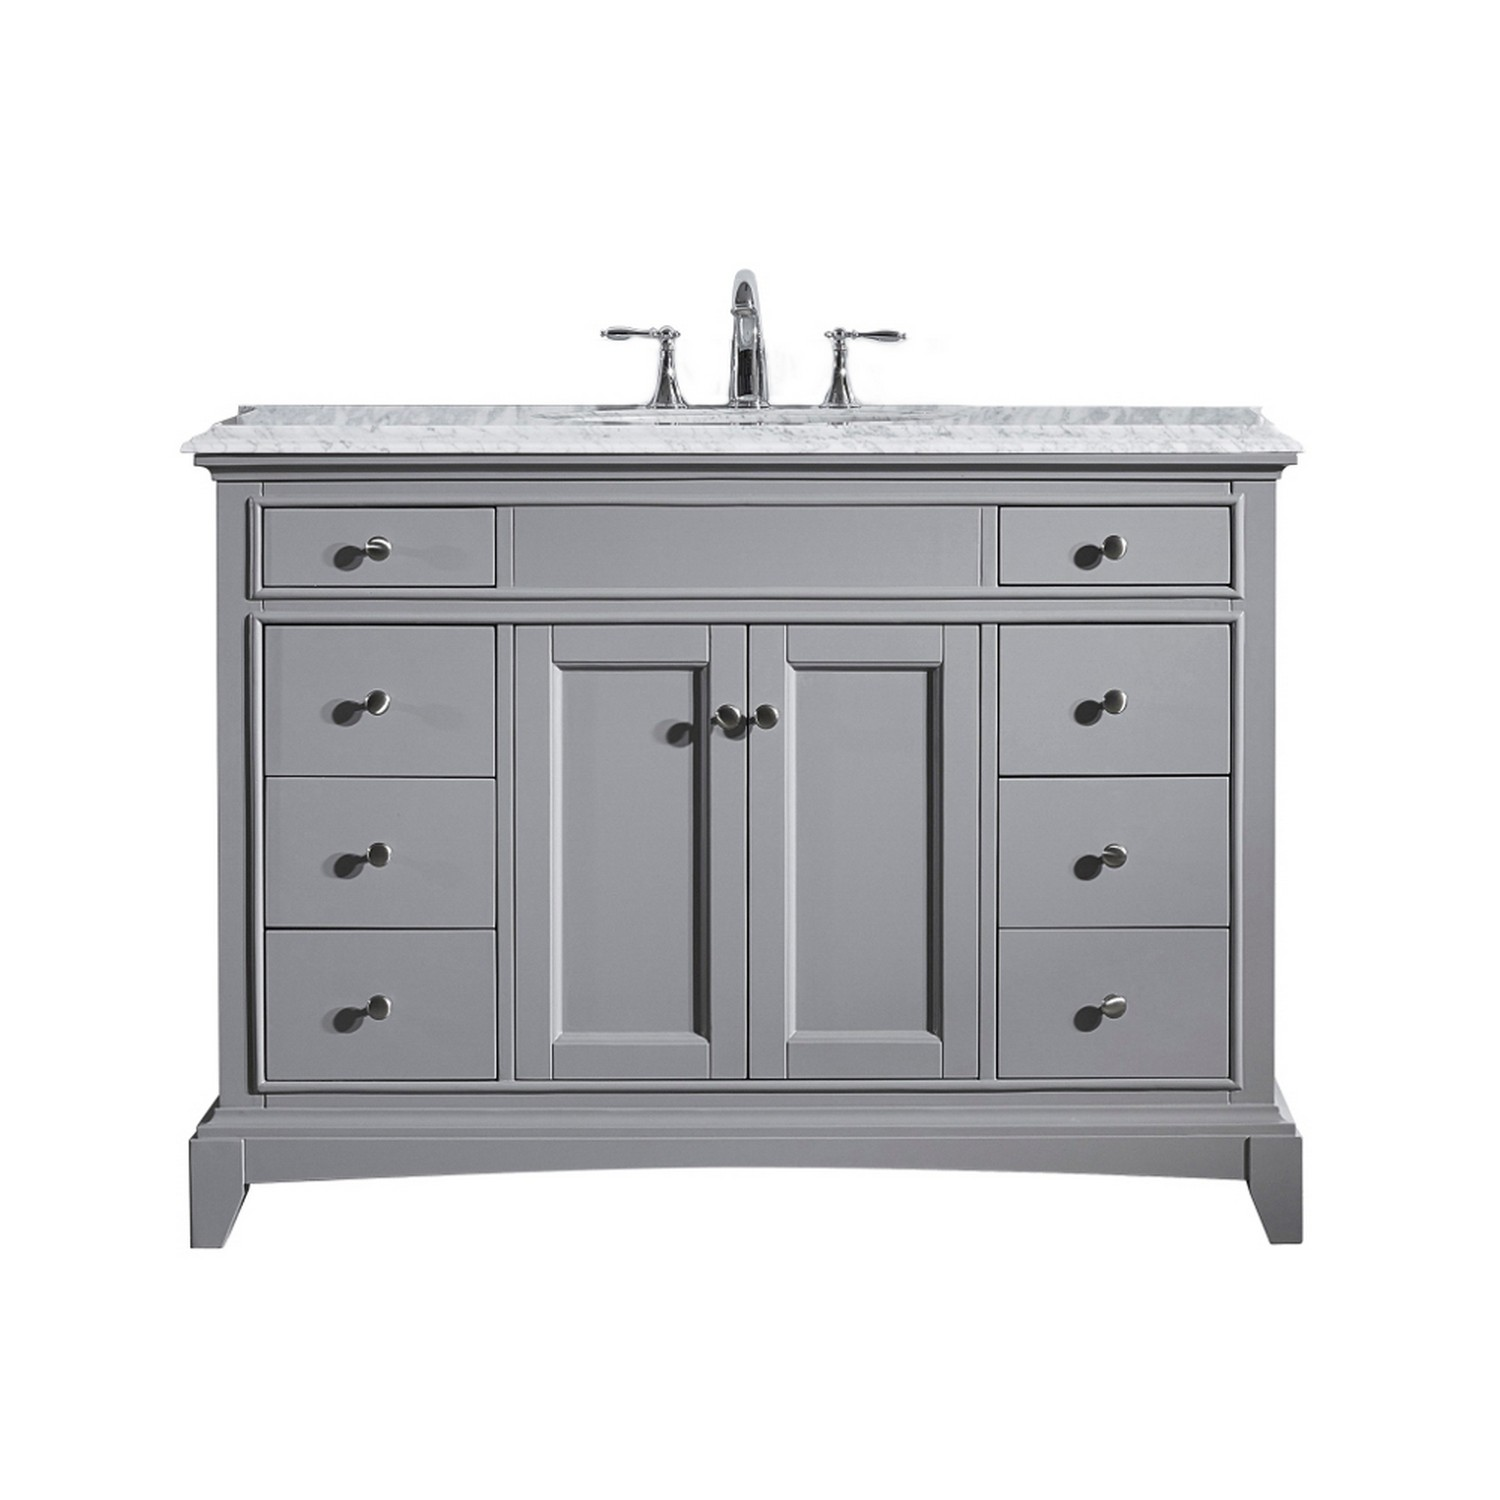 Eviva elite stamford 48 gray solid wood bathroom vanity set for Solid wood double sink bathroom vanity